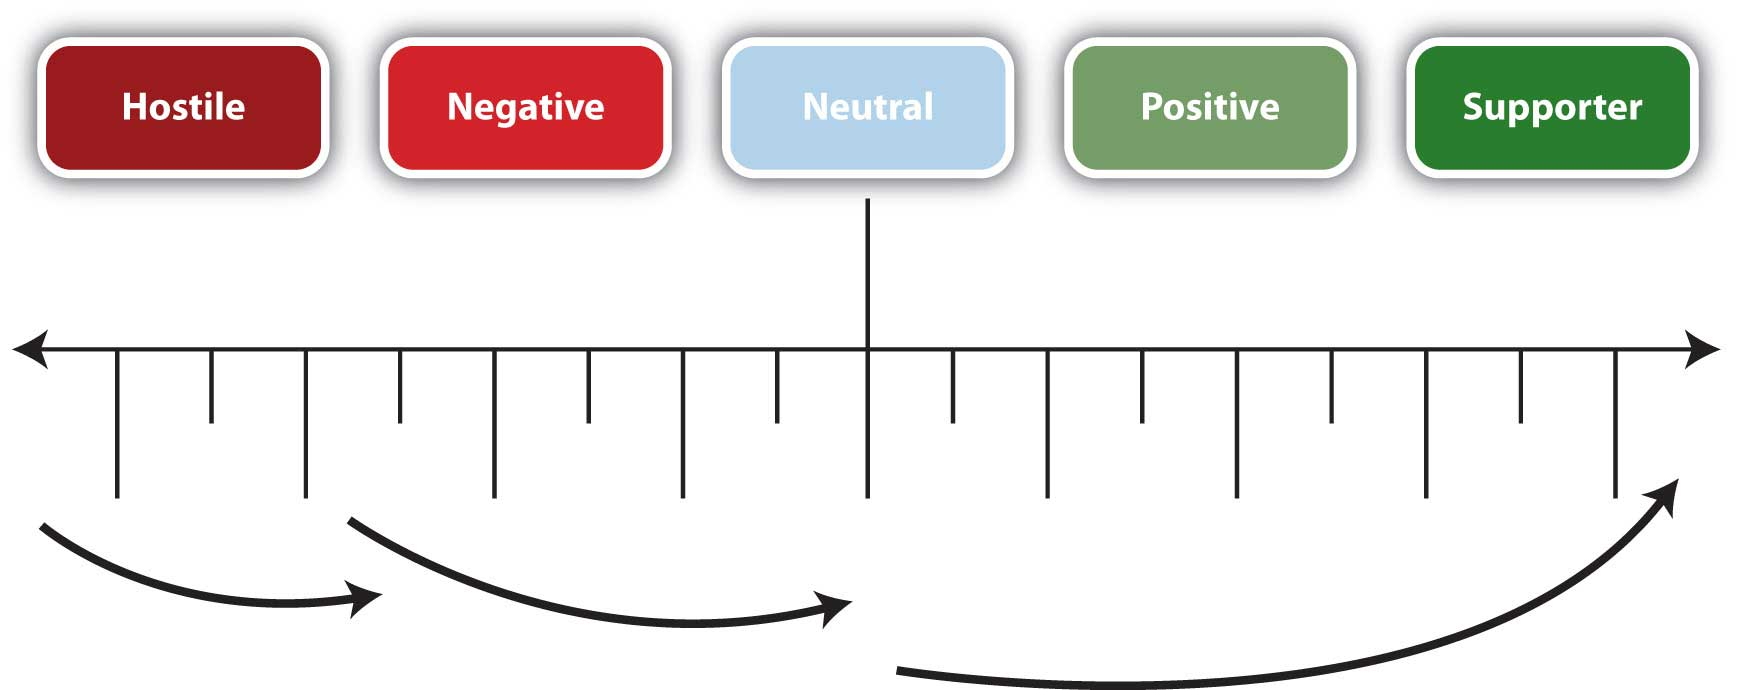 Measurable Gain with the categories: hostile, negative, neutral, positive, and supporter